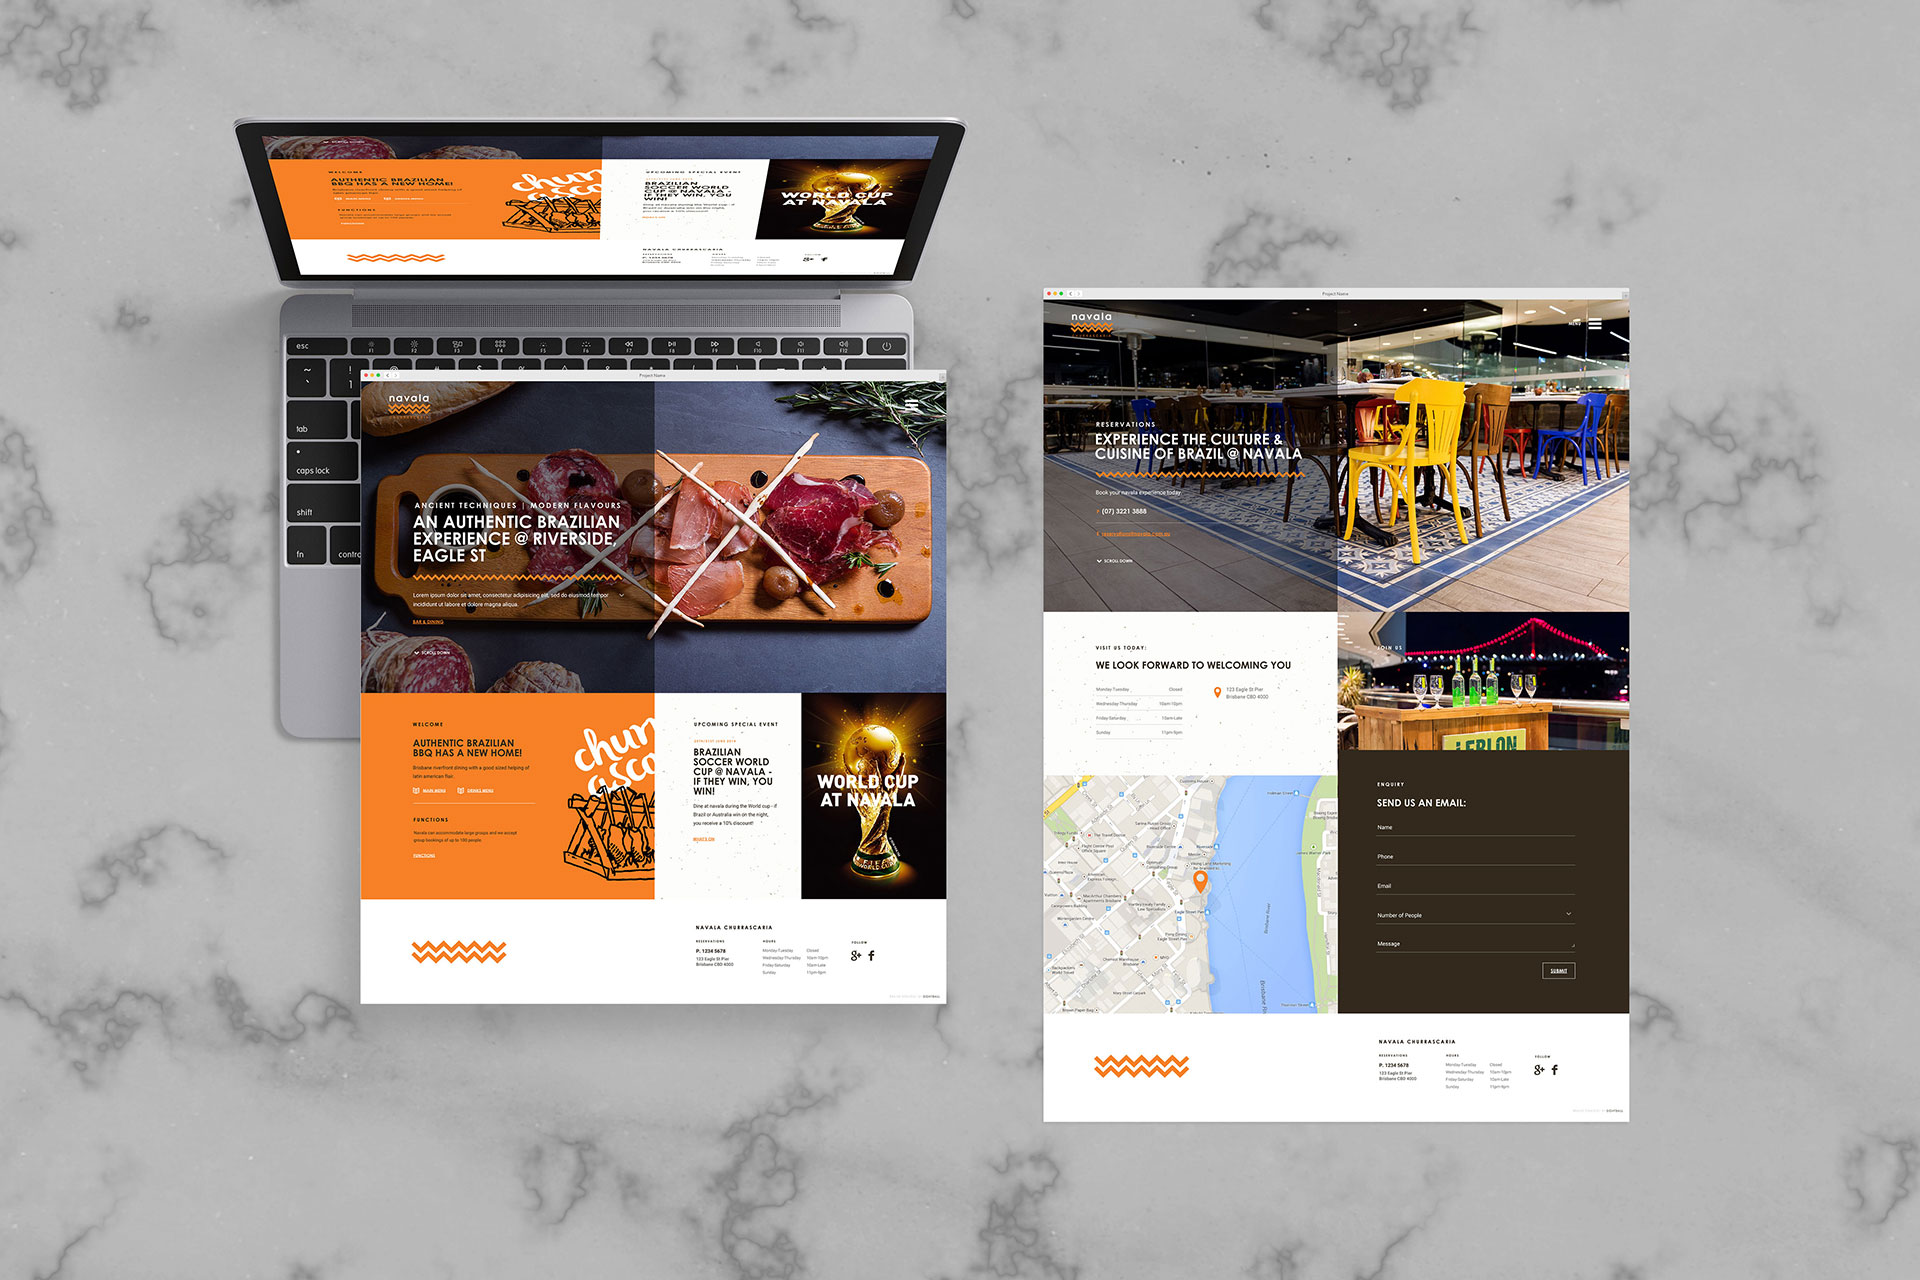 Navala-Website-Design-Page-Layout